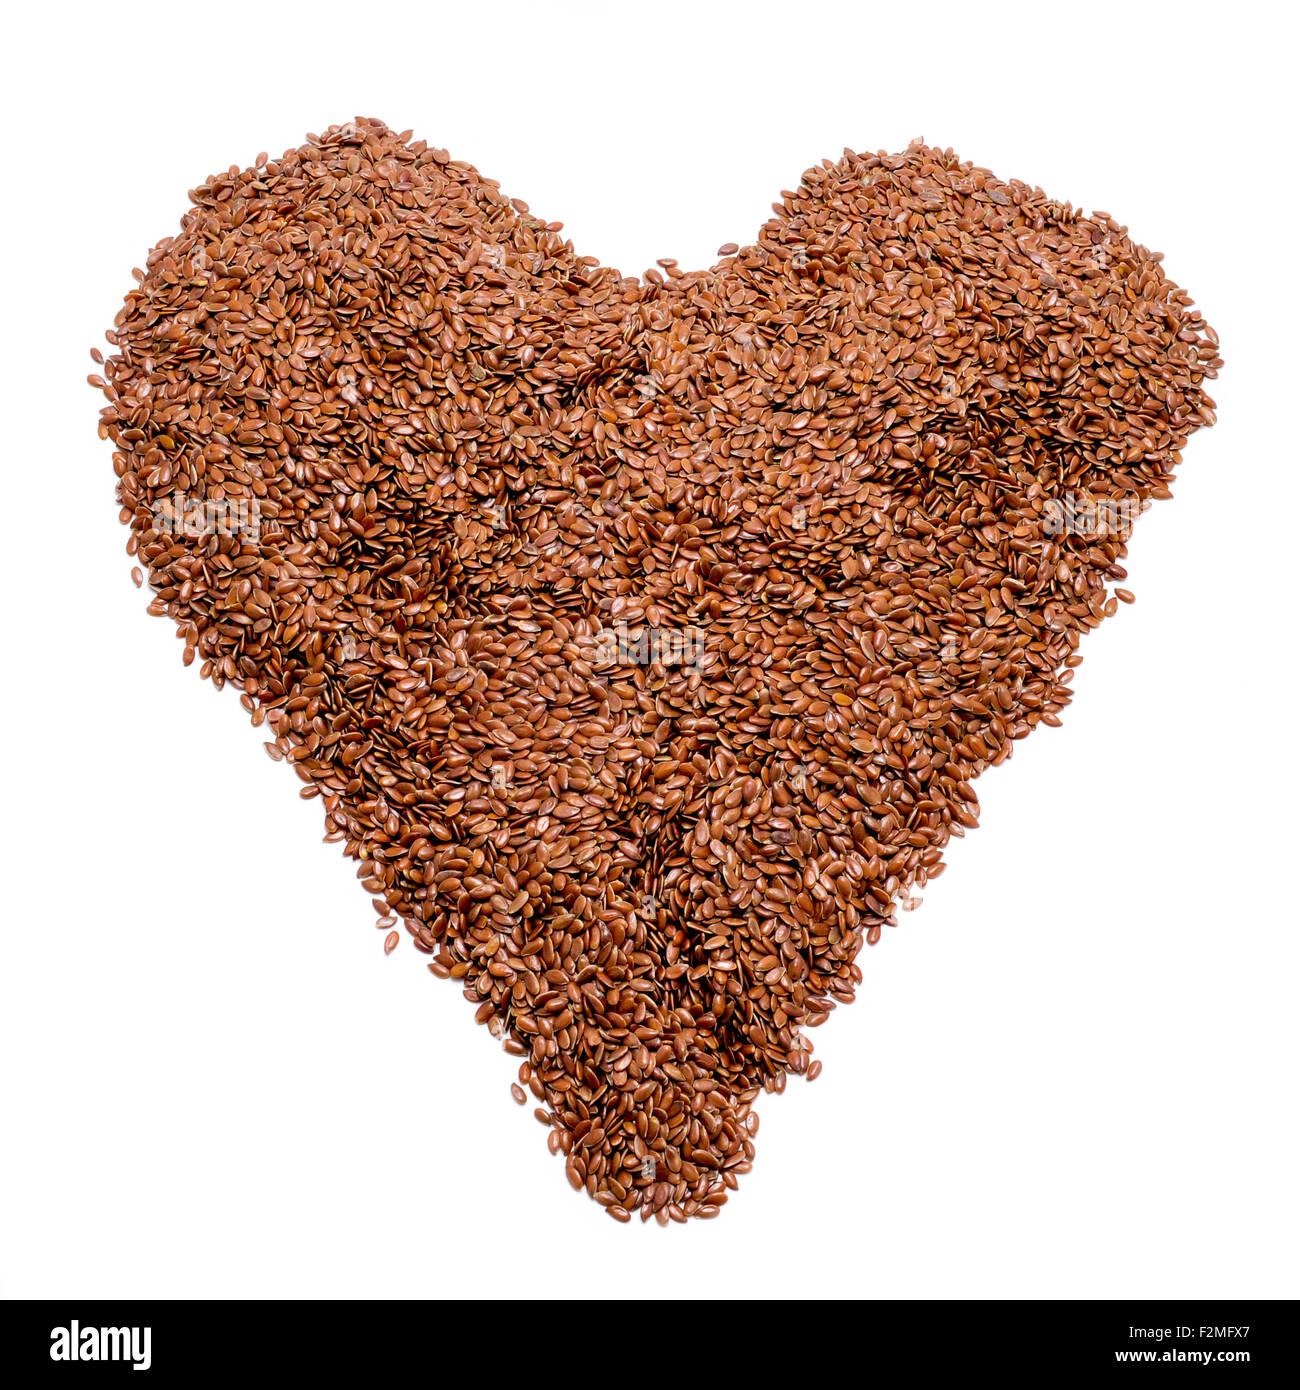 a pile of brown flax seeds forming a heart on a white background - Stock Image